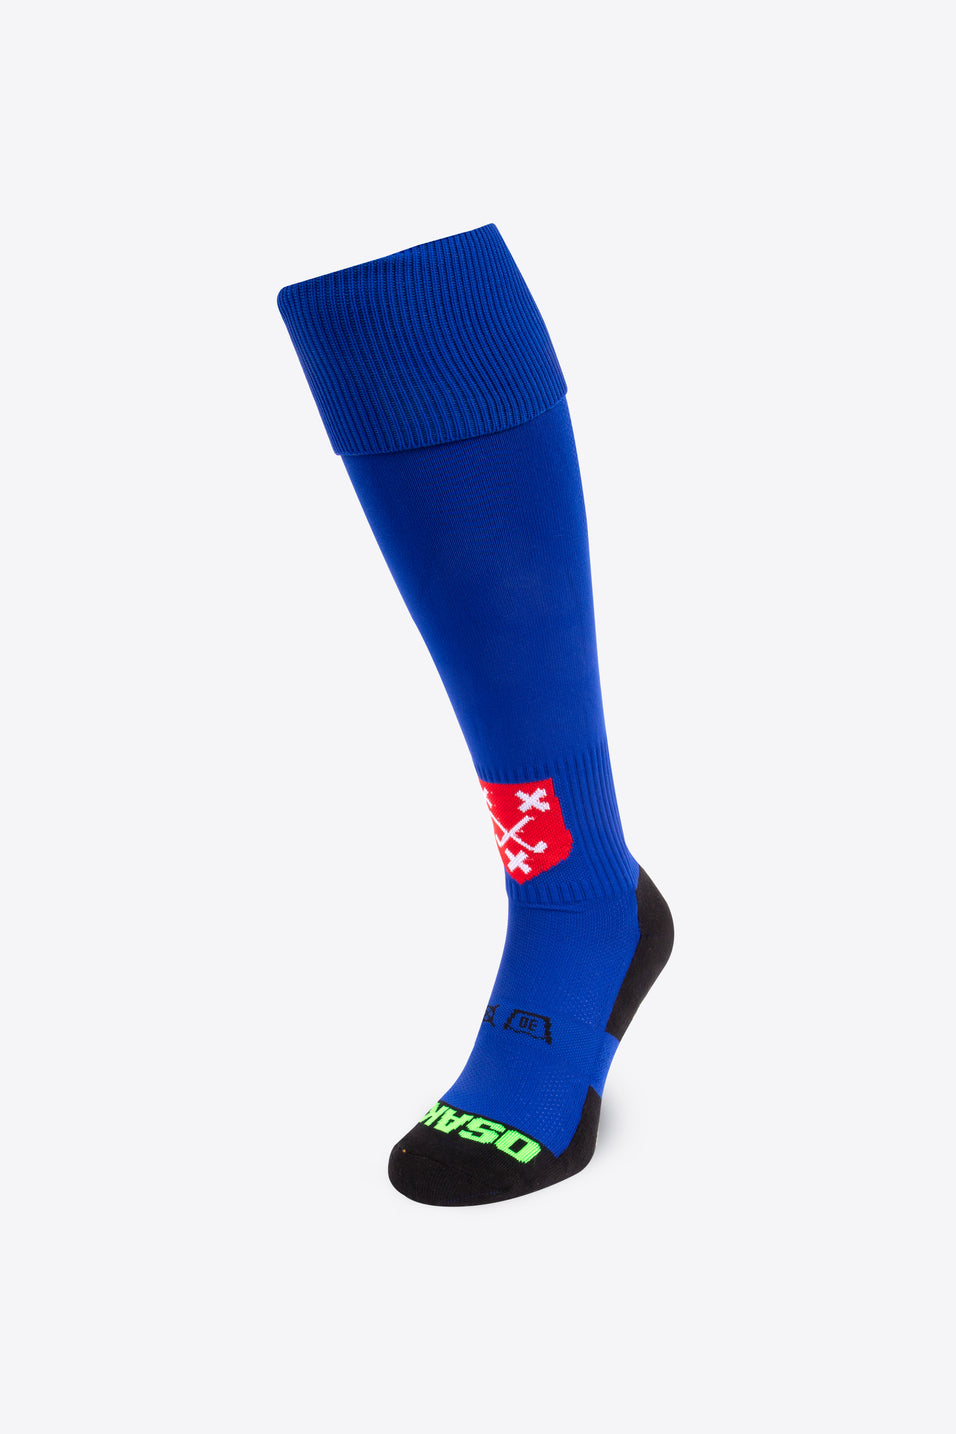 SOX BH&BC Breda - Royal Blue